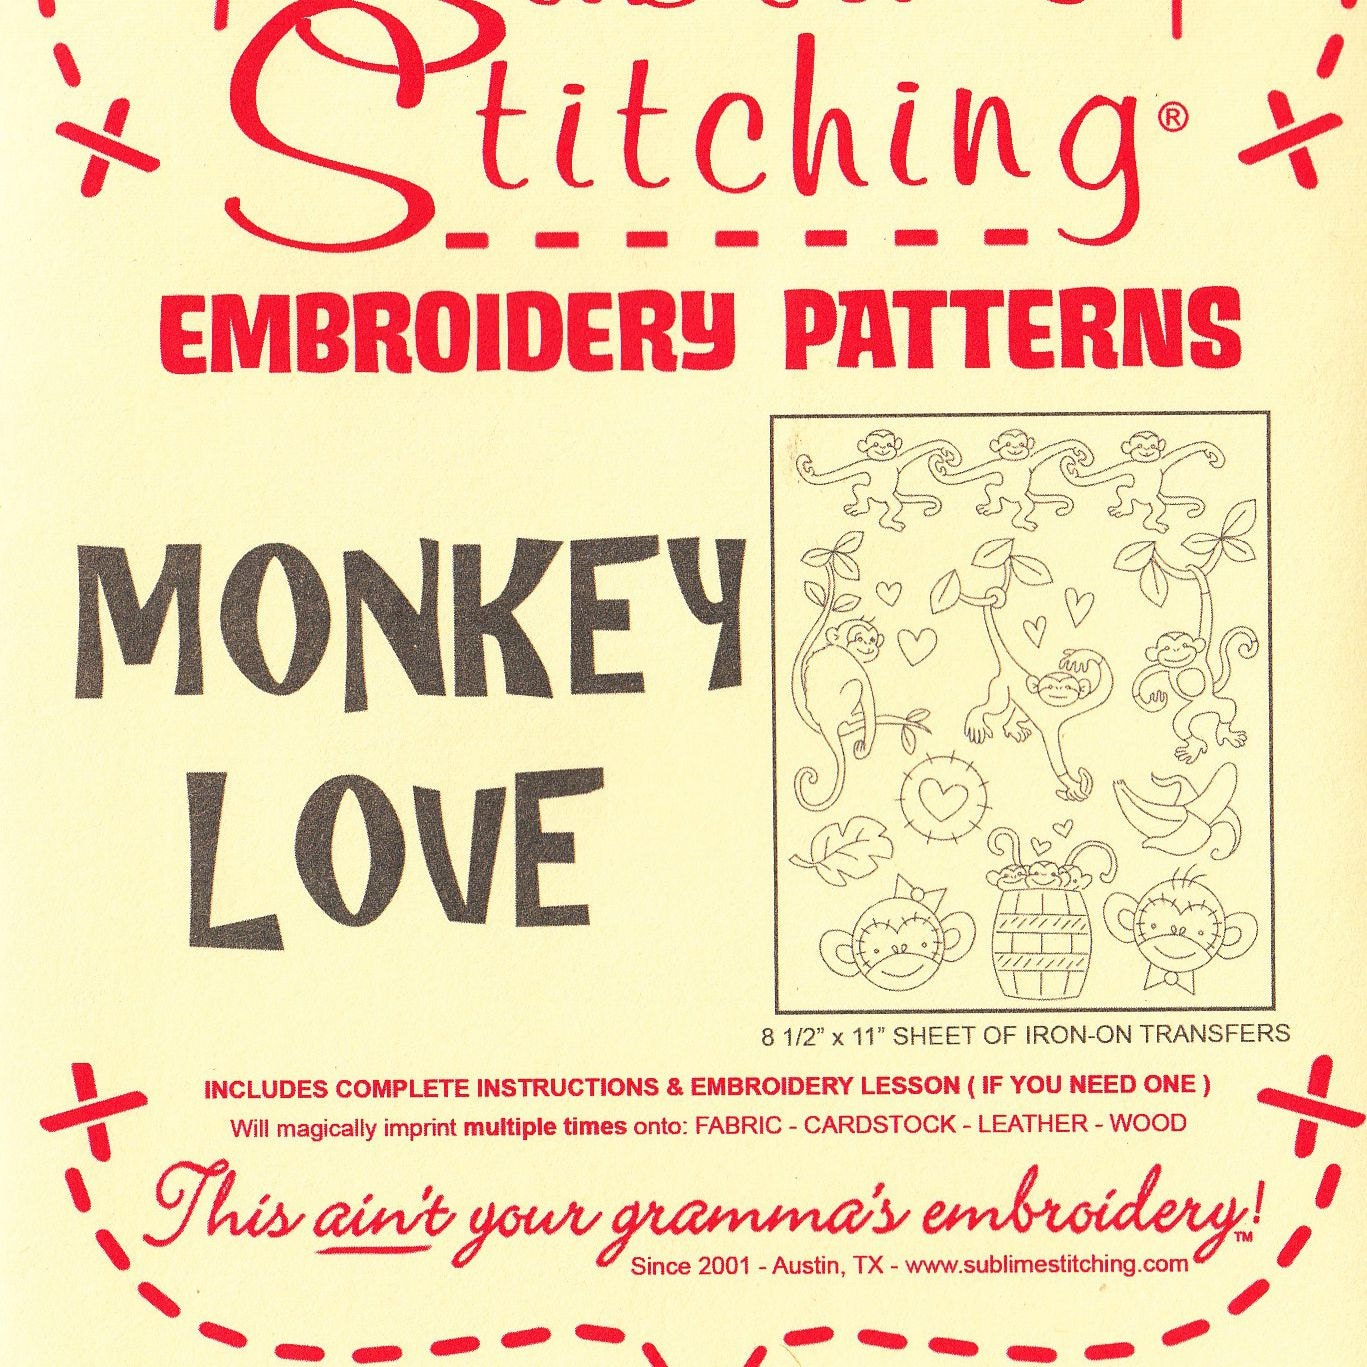 Sublime stitching embroidery patterns cute hand